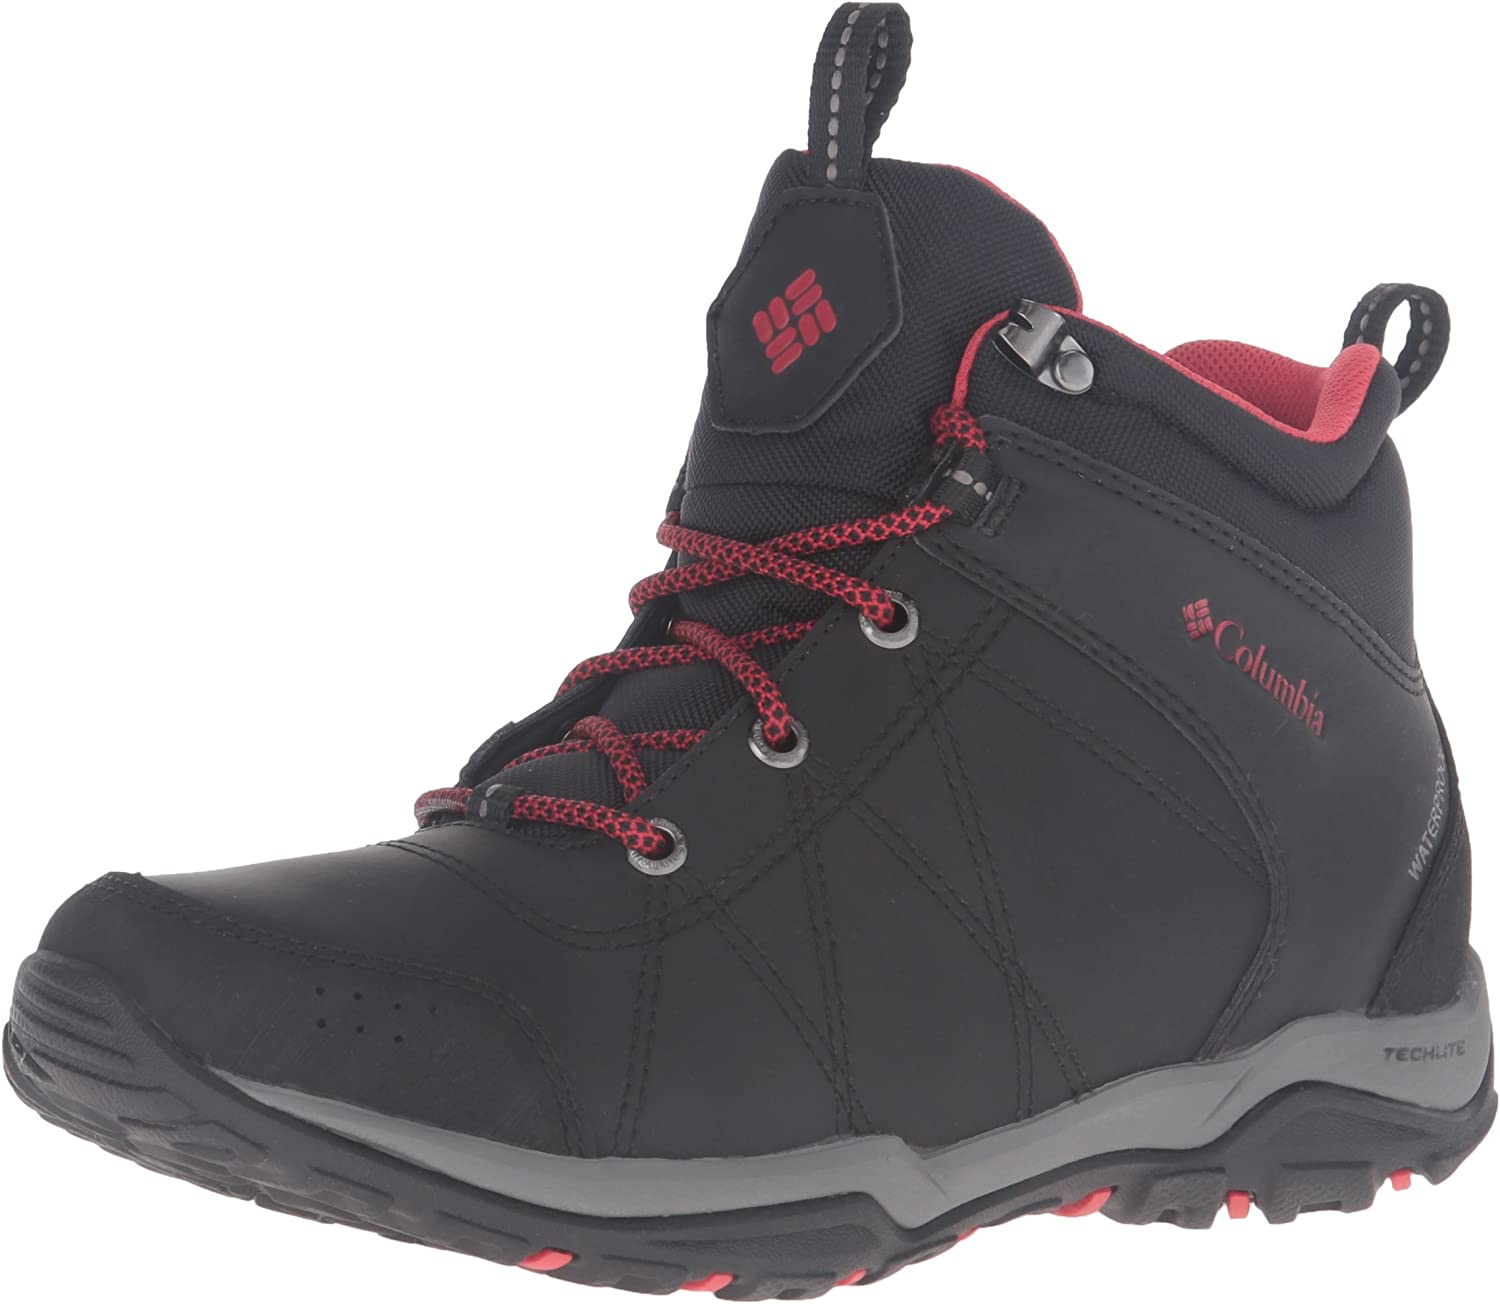 Columbia Womens Fire Venture Mid Waterproof High Rise Hiking Boots